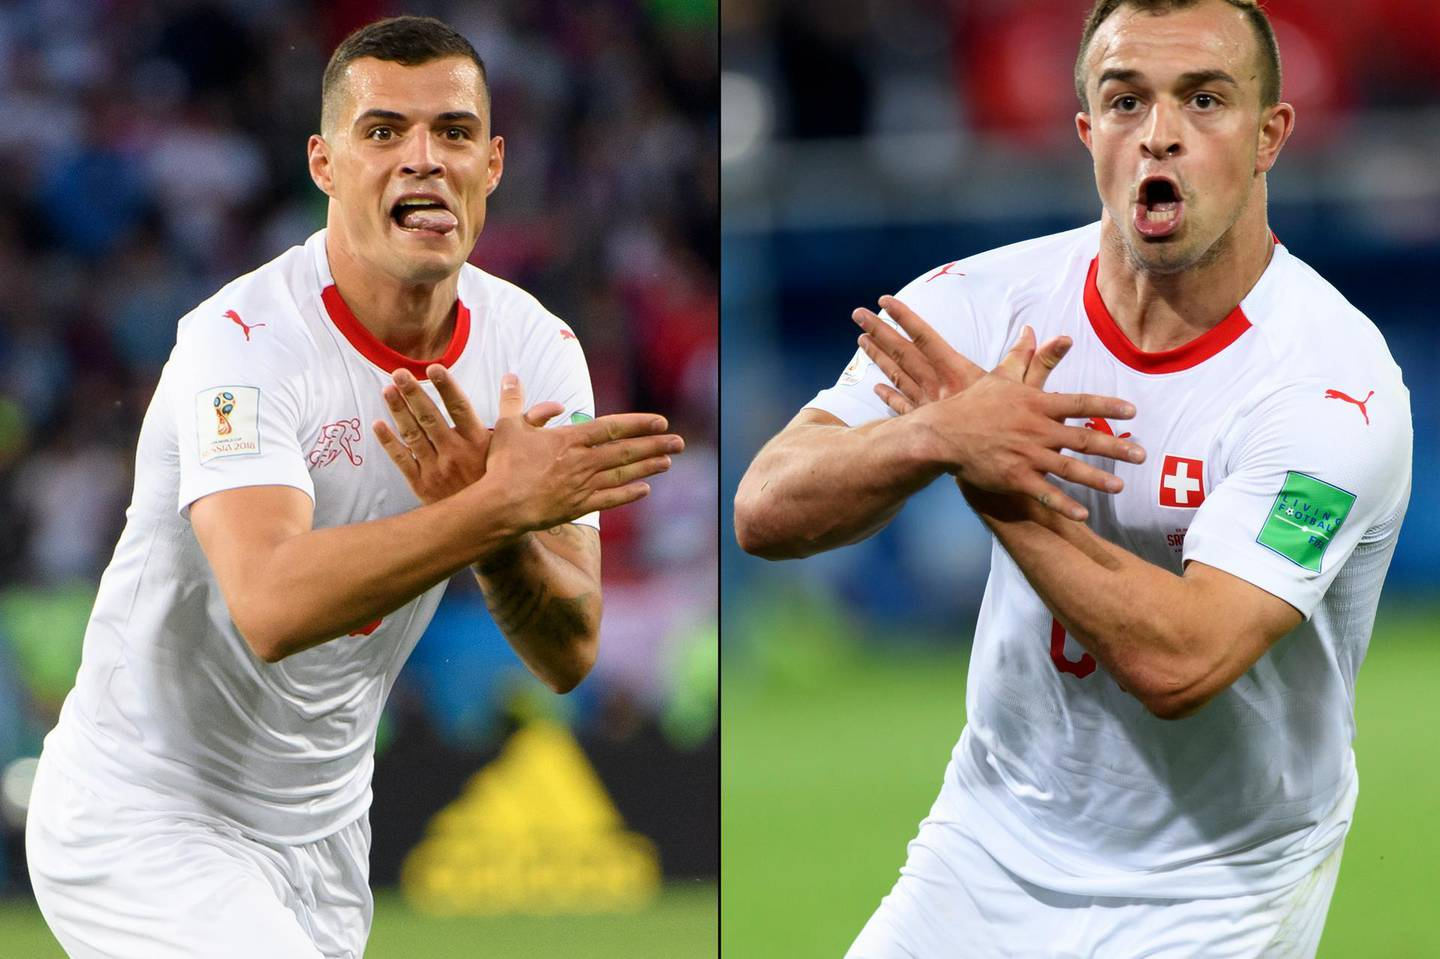 epa06832171 A combo of two pictures shows the celebration for the first goal of Switzerland's midfielder Granit Xhaka, (L), and the victory goal of Switzerland's midfielder Xherdan Shaqiri, (R), both making the eagle emblem of the Kosovo during the FIFA World Cup 2018 group E preliminary round soccer match between Switzerland and Serbia at the Arena Baltika Stadium, in Kaliningrad, Russia, Friday, June 22, 2018.    (RESTRICTIONS APPLY: Editorial Use Only, not used in association with any commercial entity - Images must not be used in any form of alert service or push service of any kind including via mobile alert services, downloads to mobile devices or MMS messaging - Images must appear as still images and must not emulate match action video footage - No alteration is made to, and no text or image is superimposed over, any published image which: (a) intentionally obscures or removes a sponsor identification image; or (b) adds or overlays the commercial identification of any third party which is not officially associated with the FIFA World Cup)  EPA/LAURENT GILLIERON   EDITORIAL USE ONLY  EDITORIAL USE ONLY